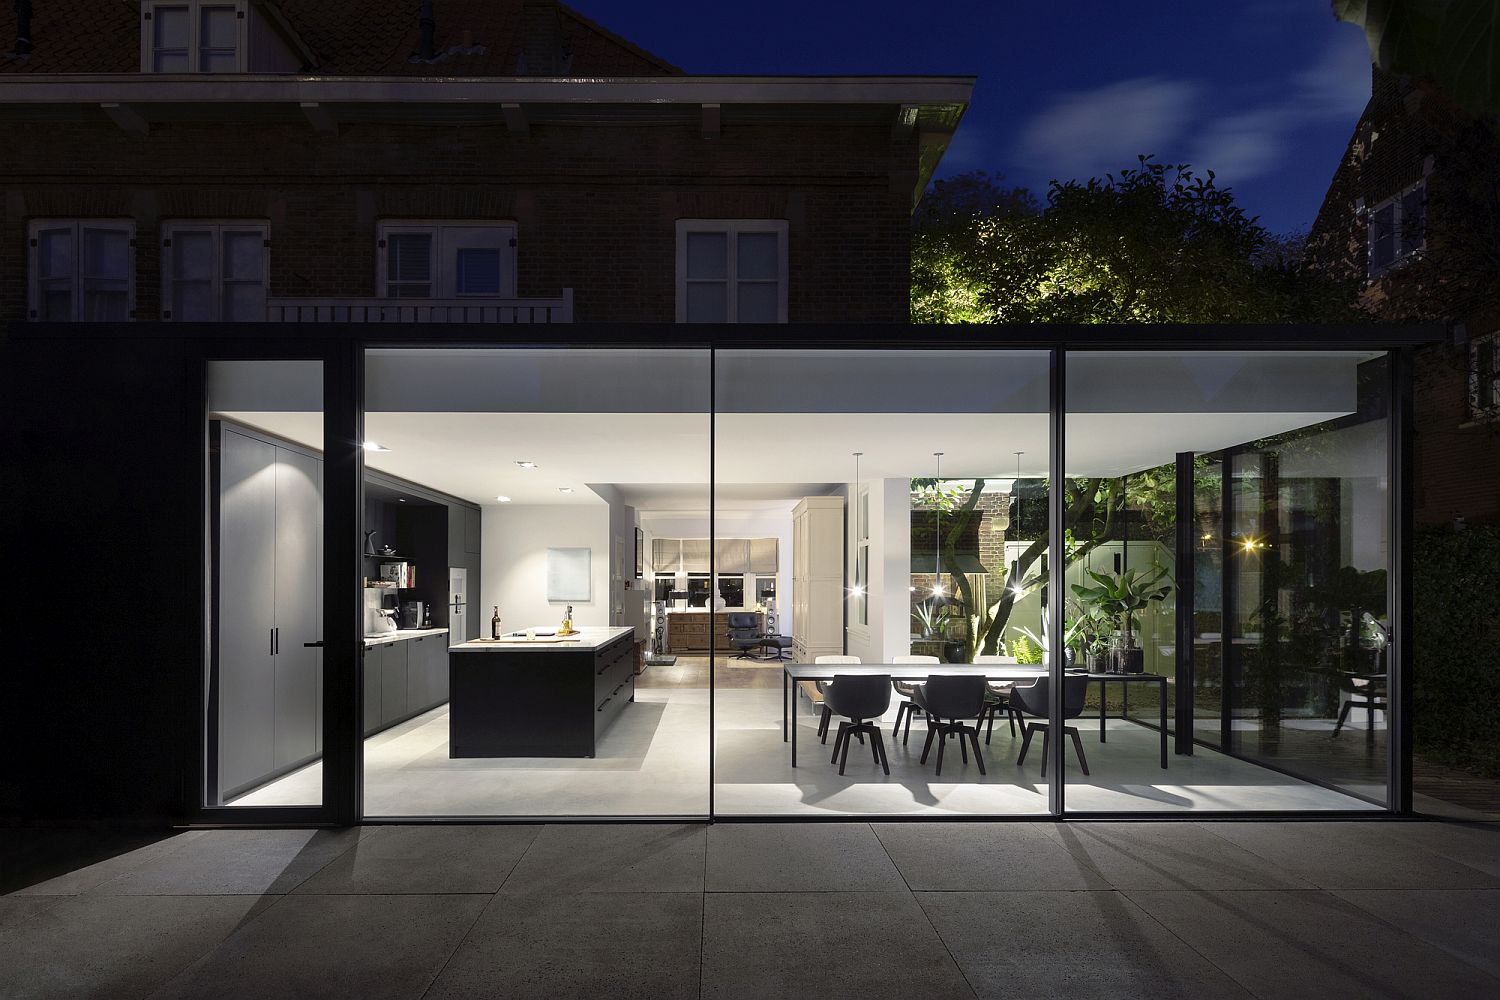 Sliding glass walls and doors for the modern extension of Dutch house